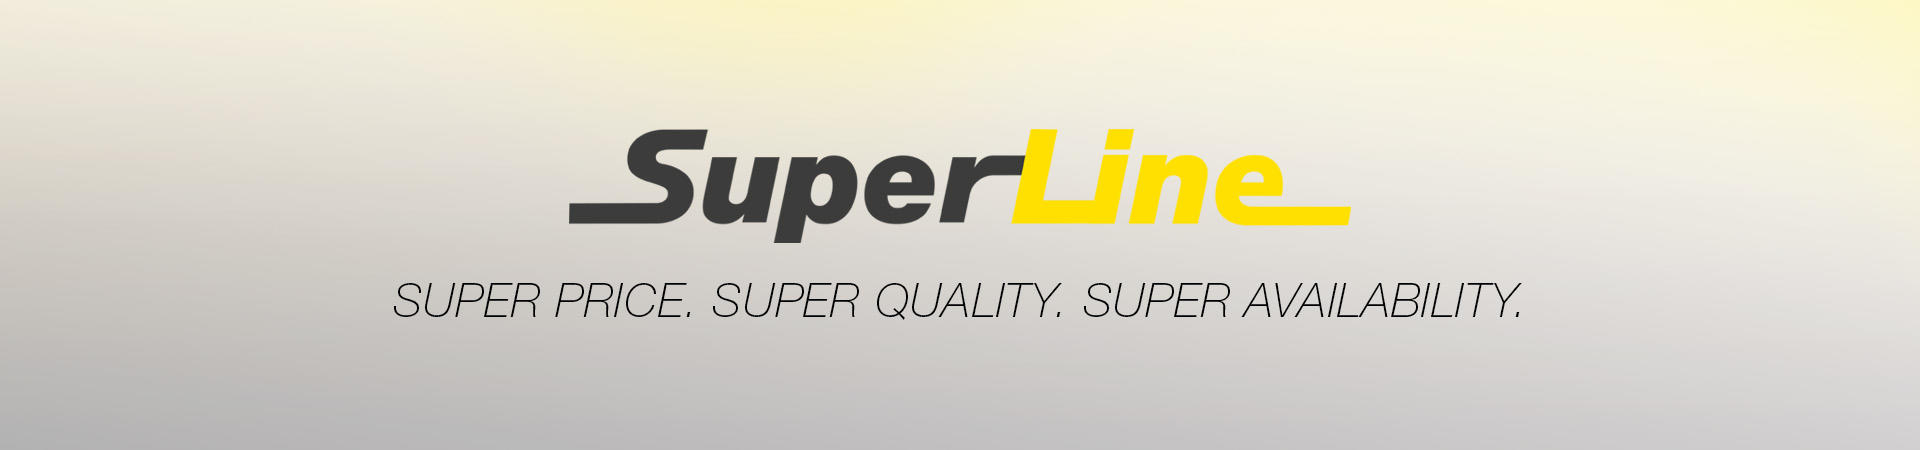 SuperLine Tools - High-tech tools for drilling, milling, threading and reaming operations.